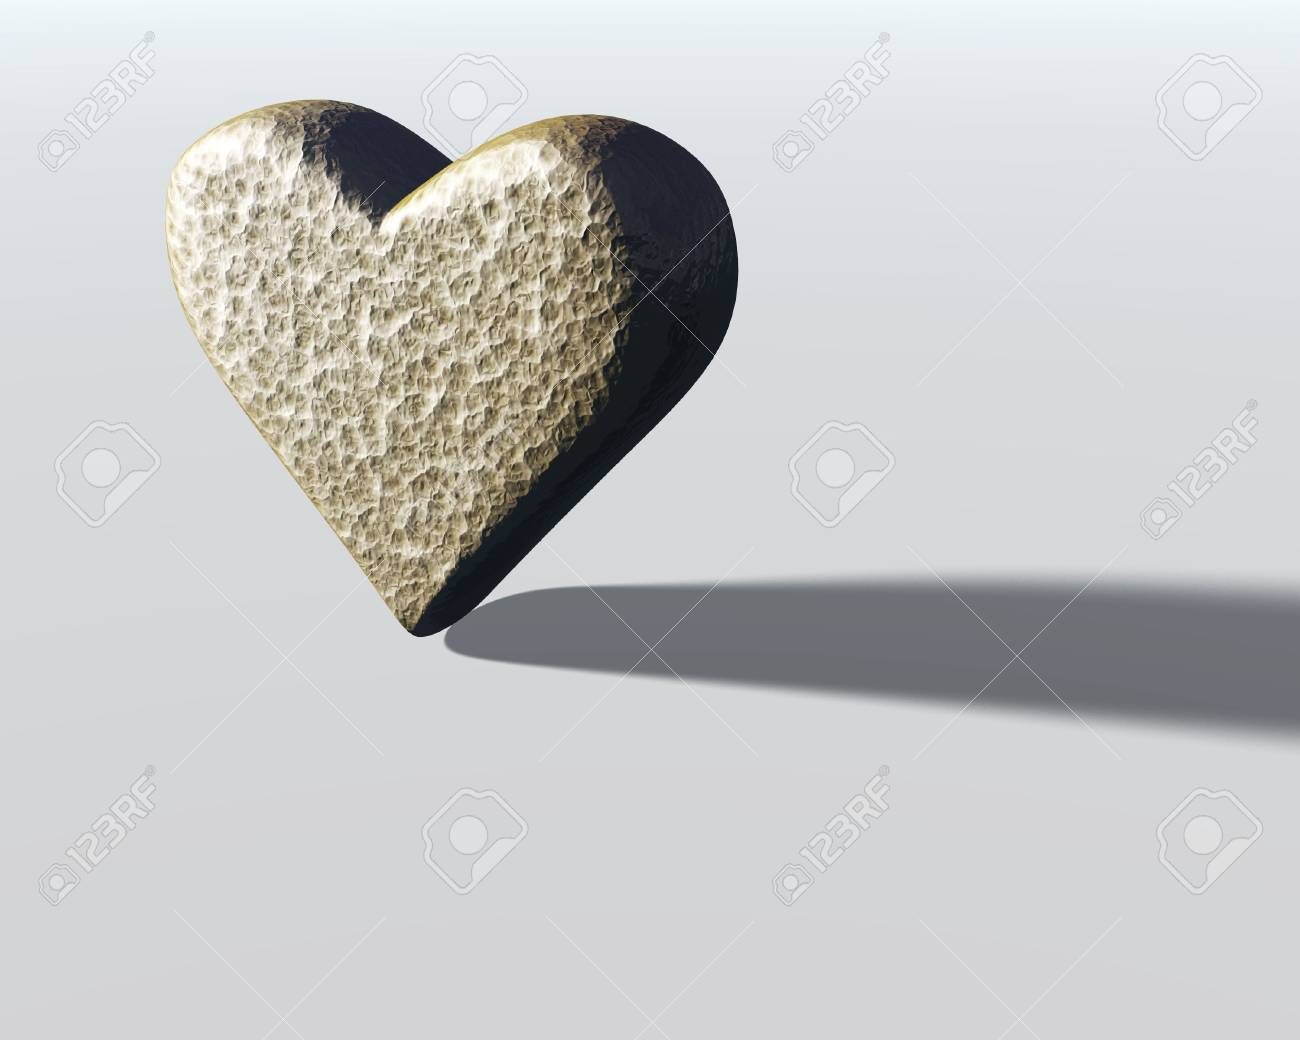 Lit Model 3d Heart Model With Gray Hammered Metal Surface Texture Lit